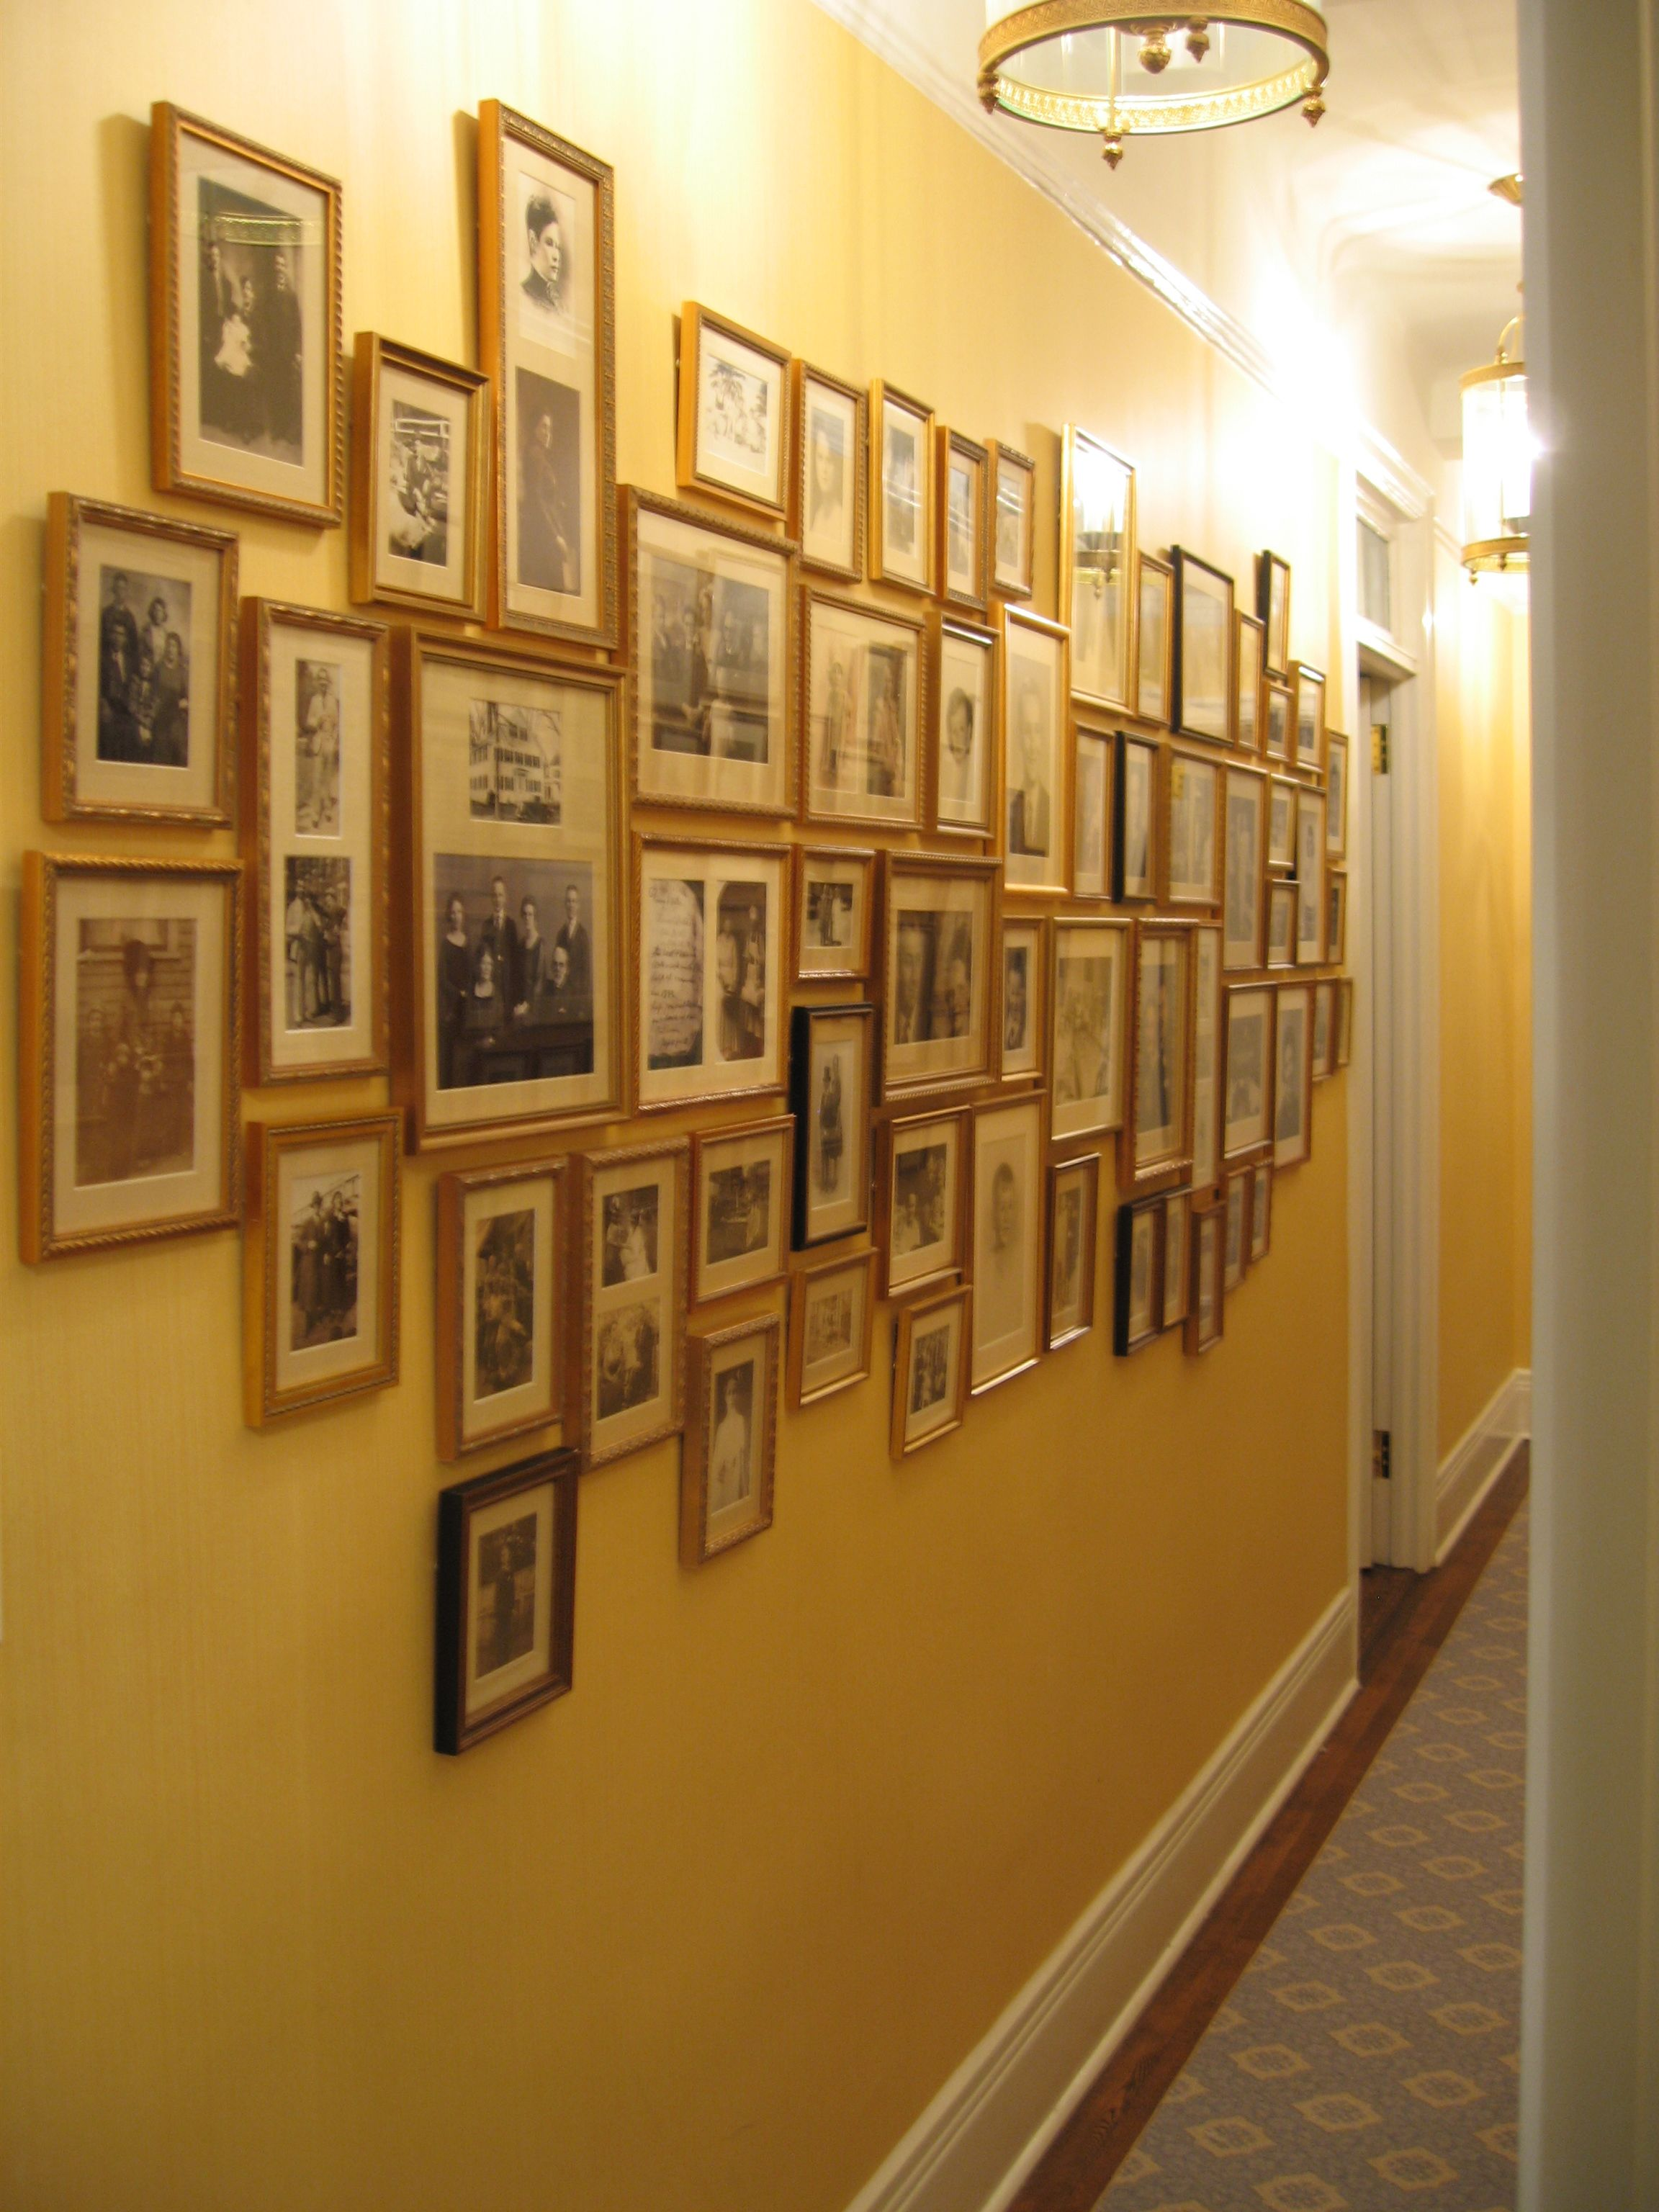 How to decorate a hallway archives ilevel for Pictures for hallway walls